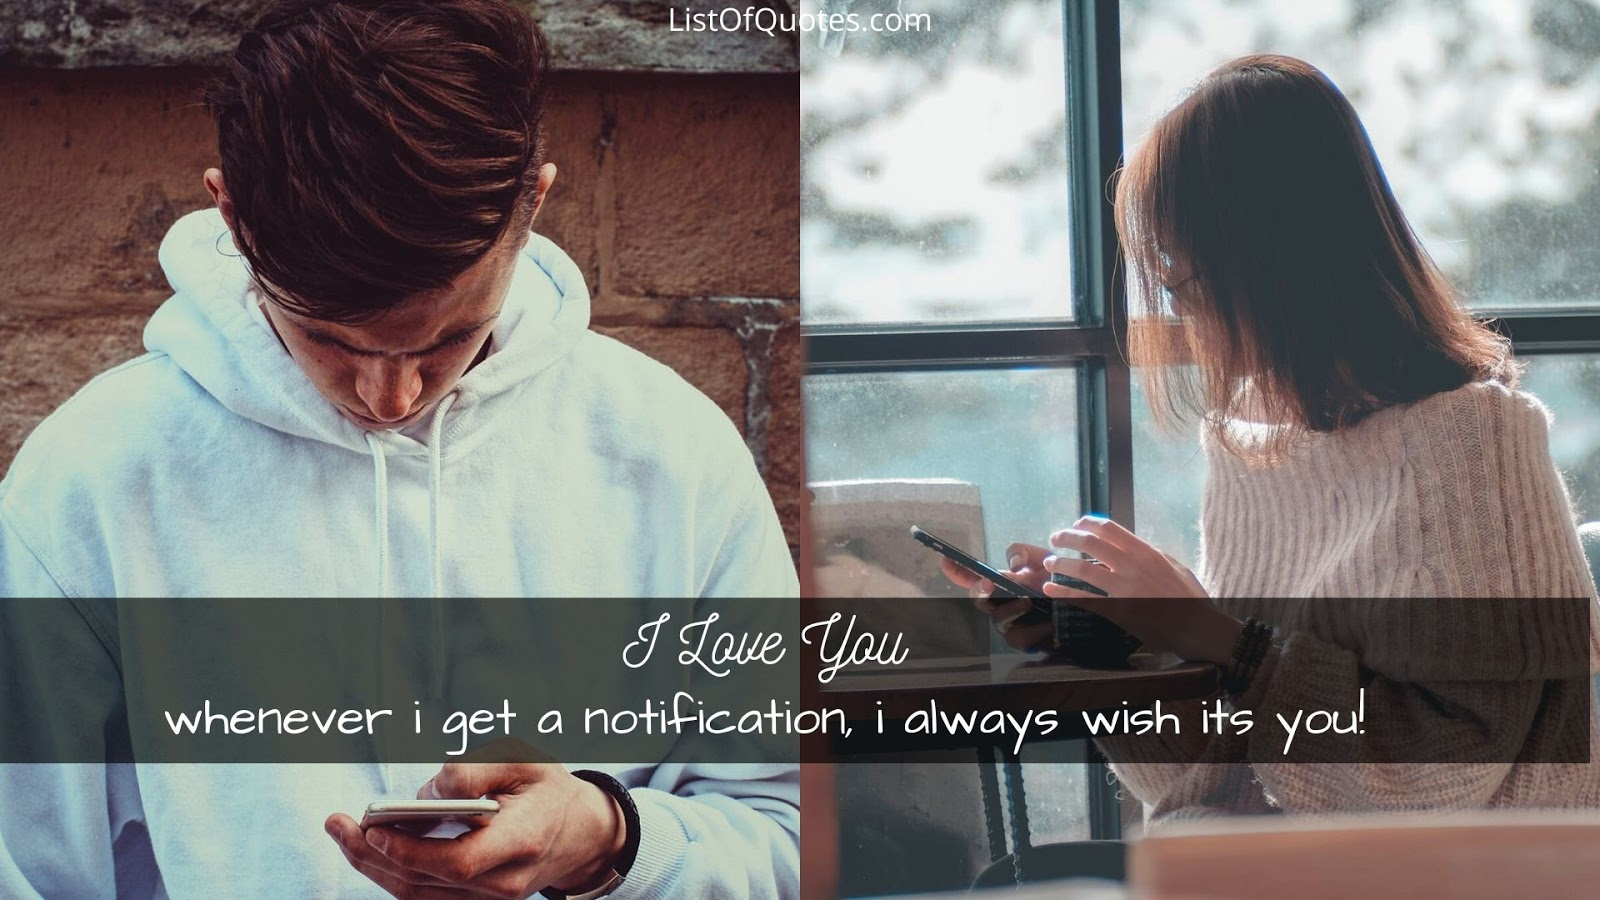 sad quotes about long distance relationships and trust For Boyfriend Girlfriend